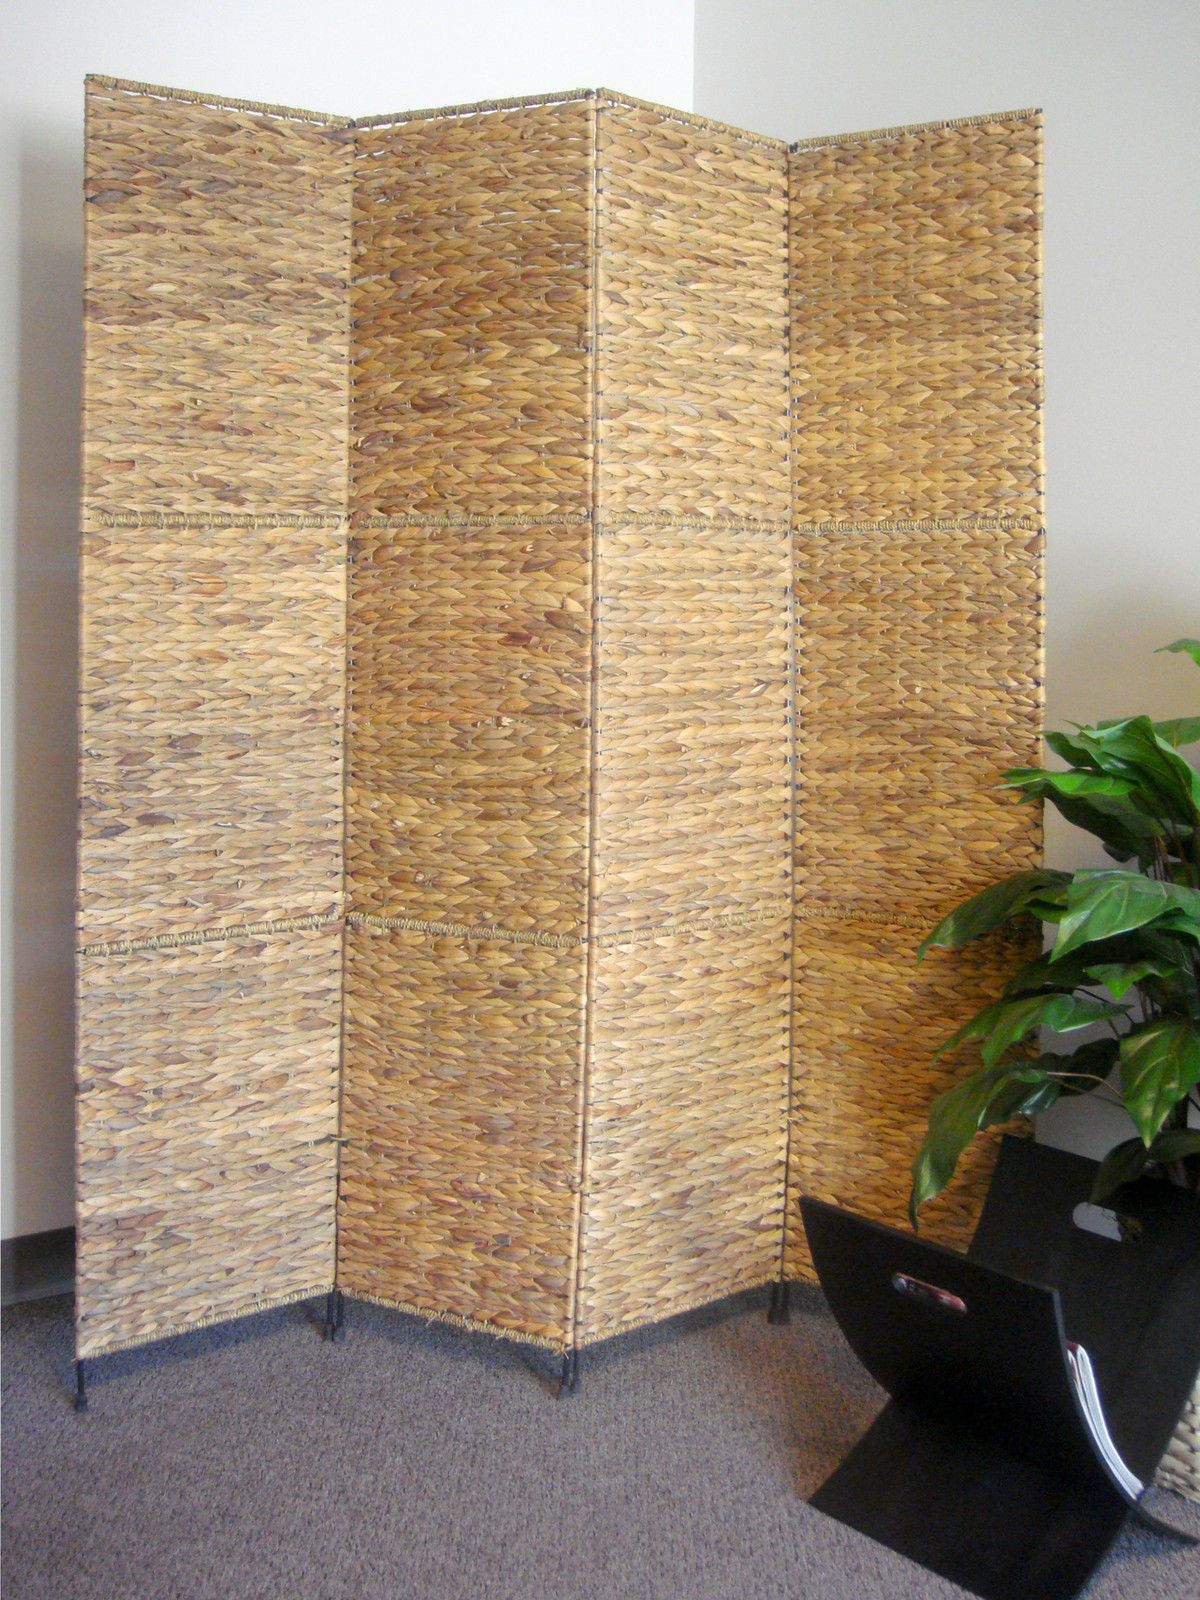 4 Panel Floor Folding Screen Room Divider, Water Hyacinth Panels ...